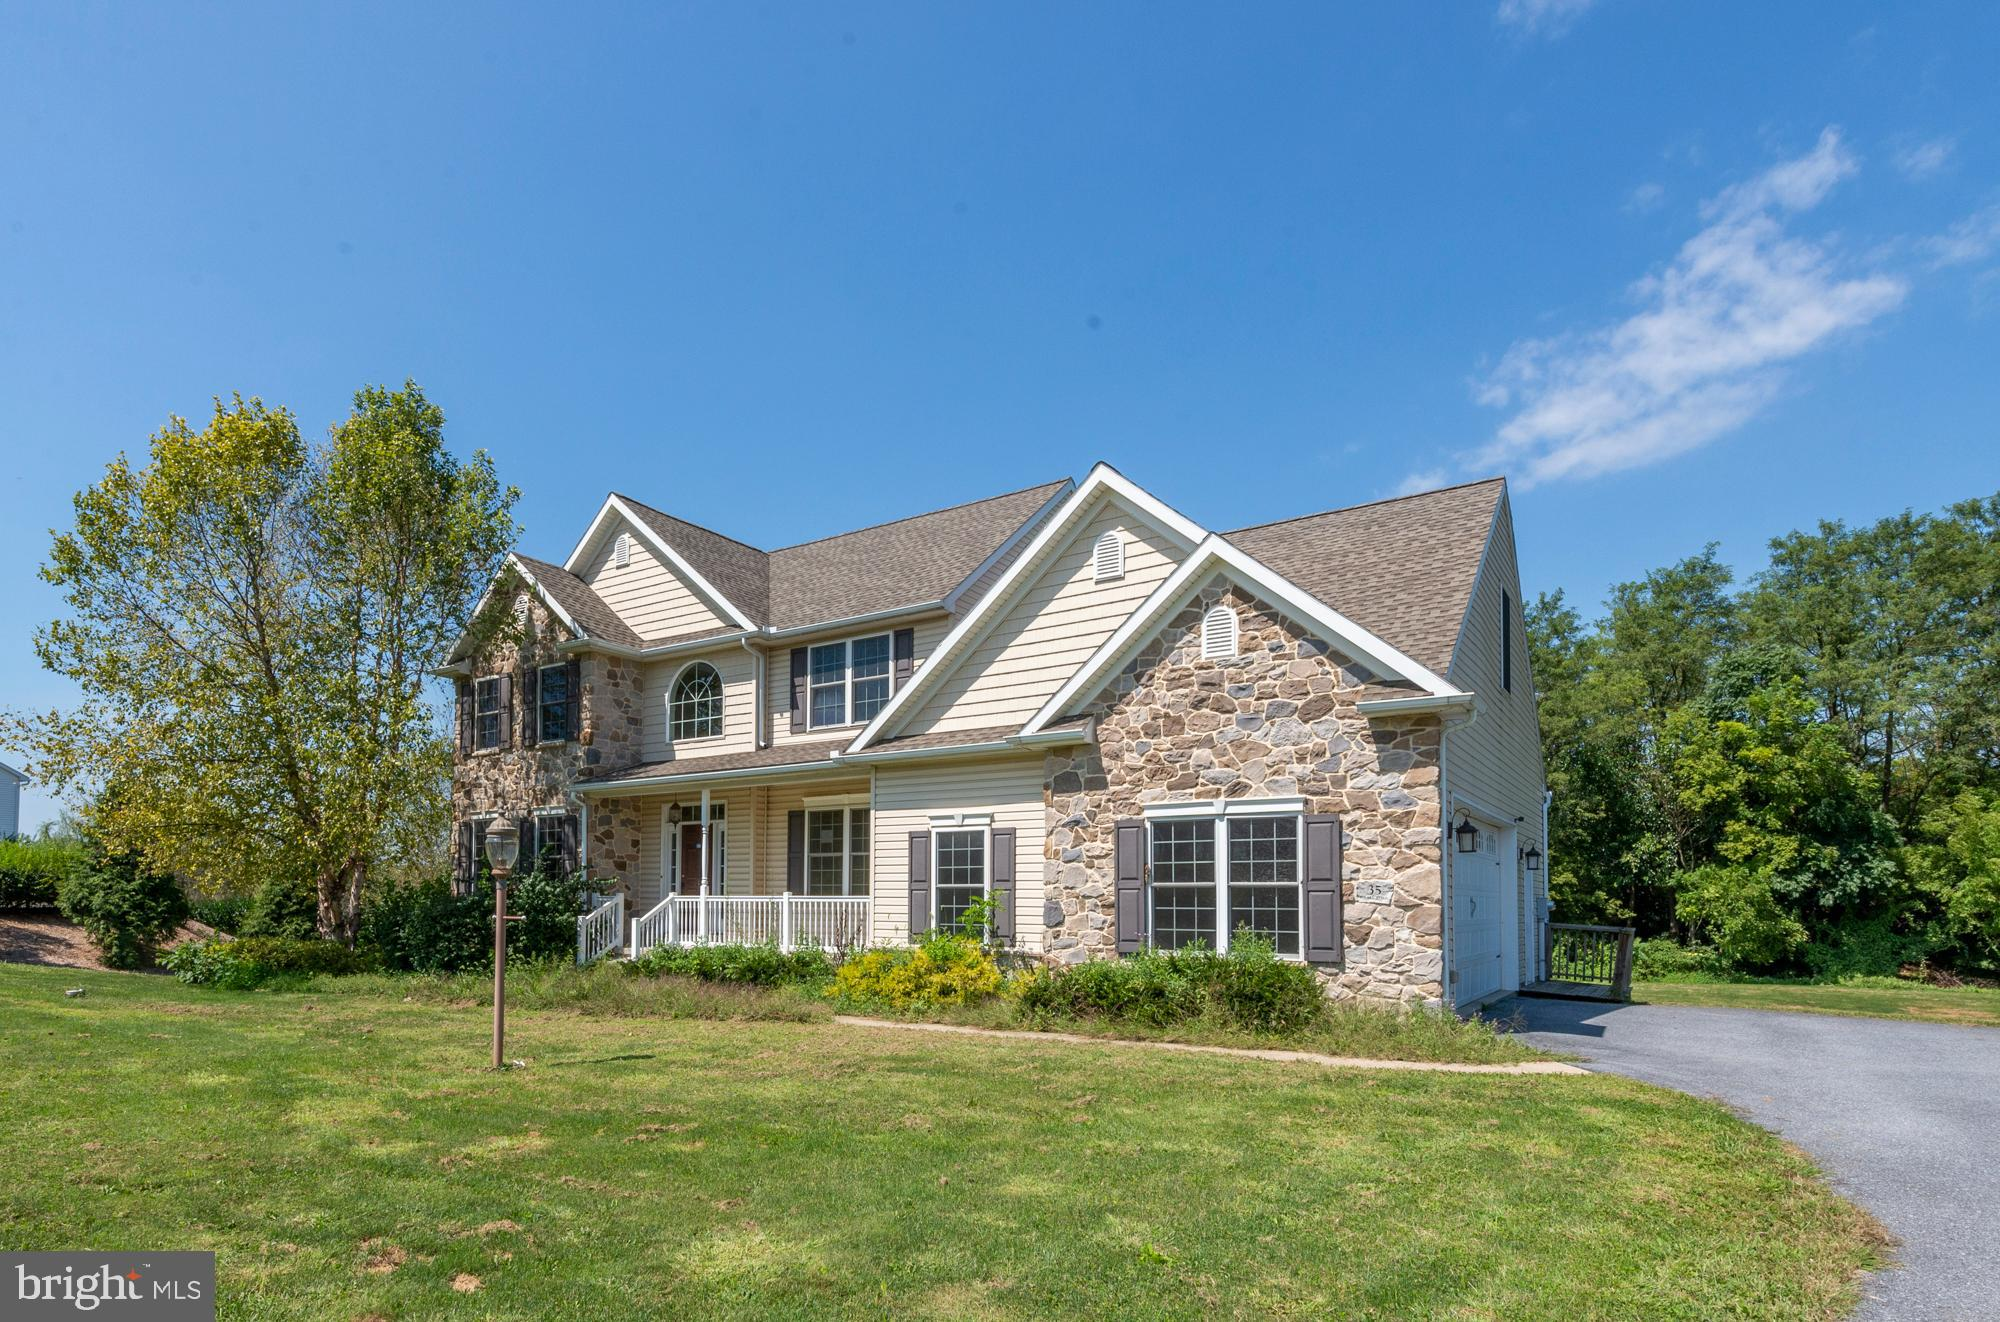 35 KRALL ROAD, MYERSTOWN, PA 17067